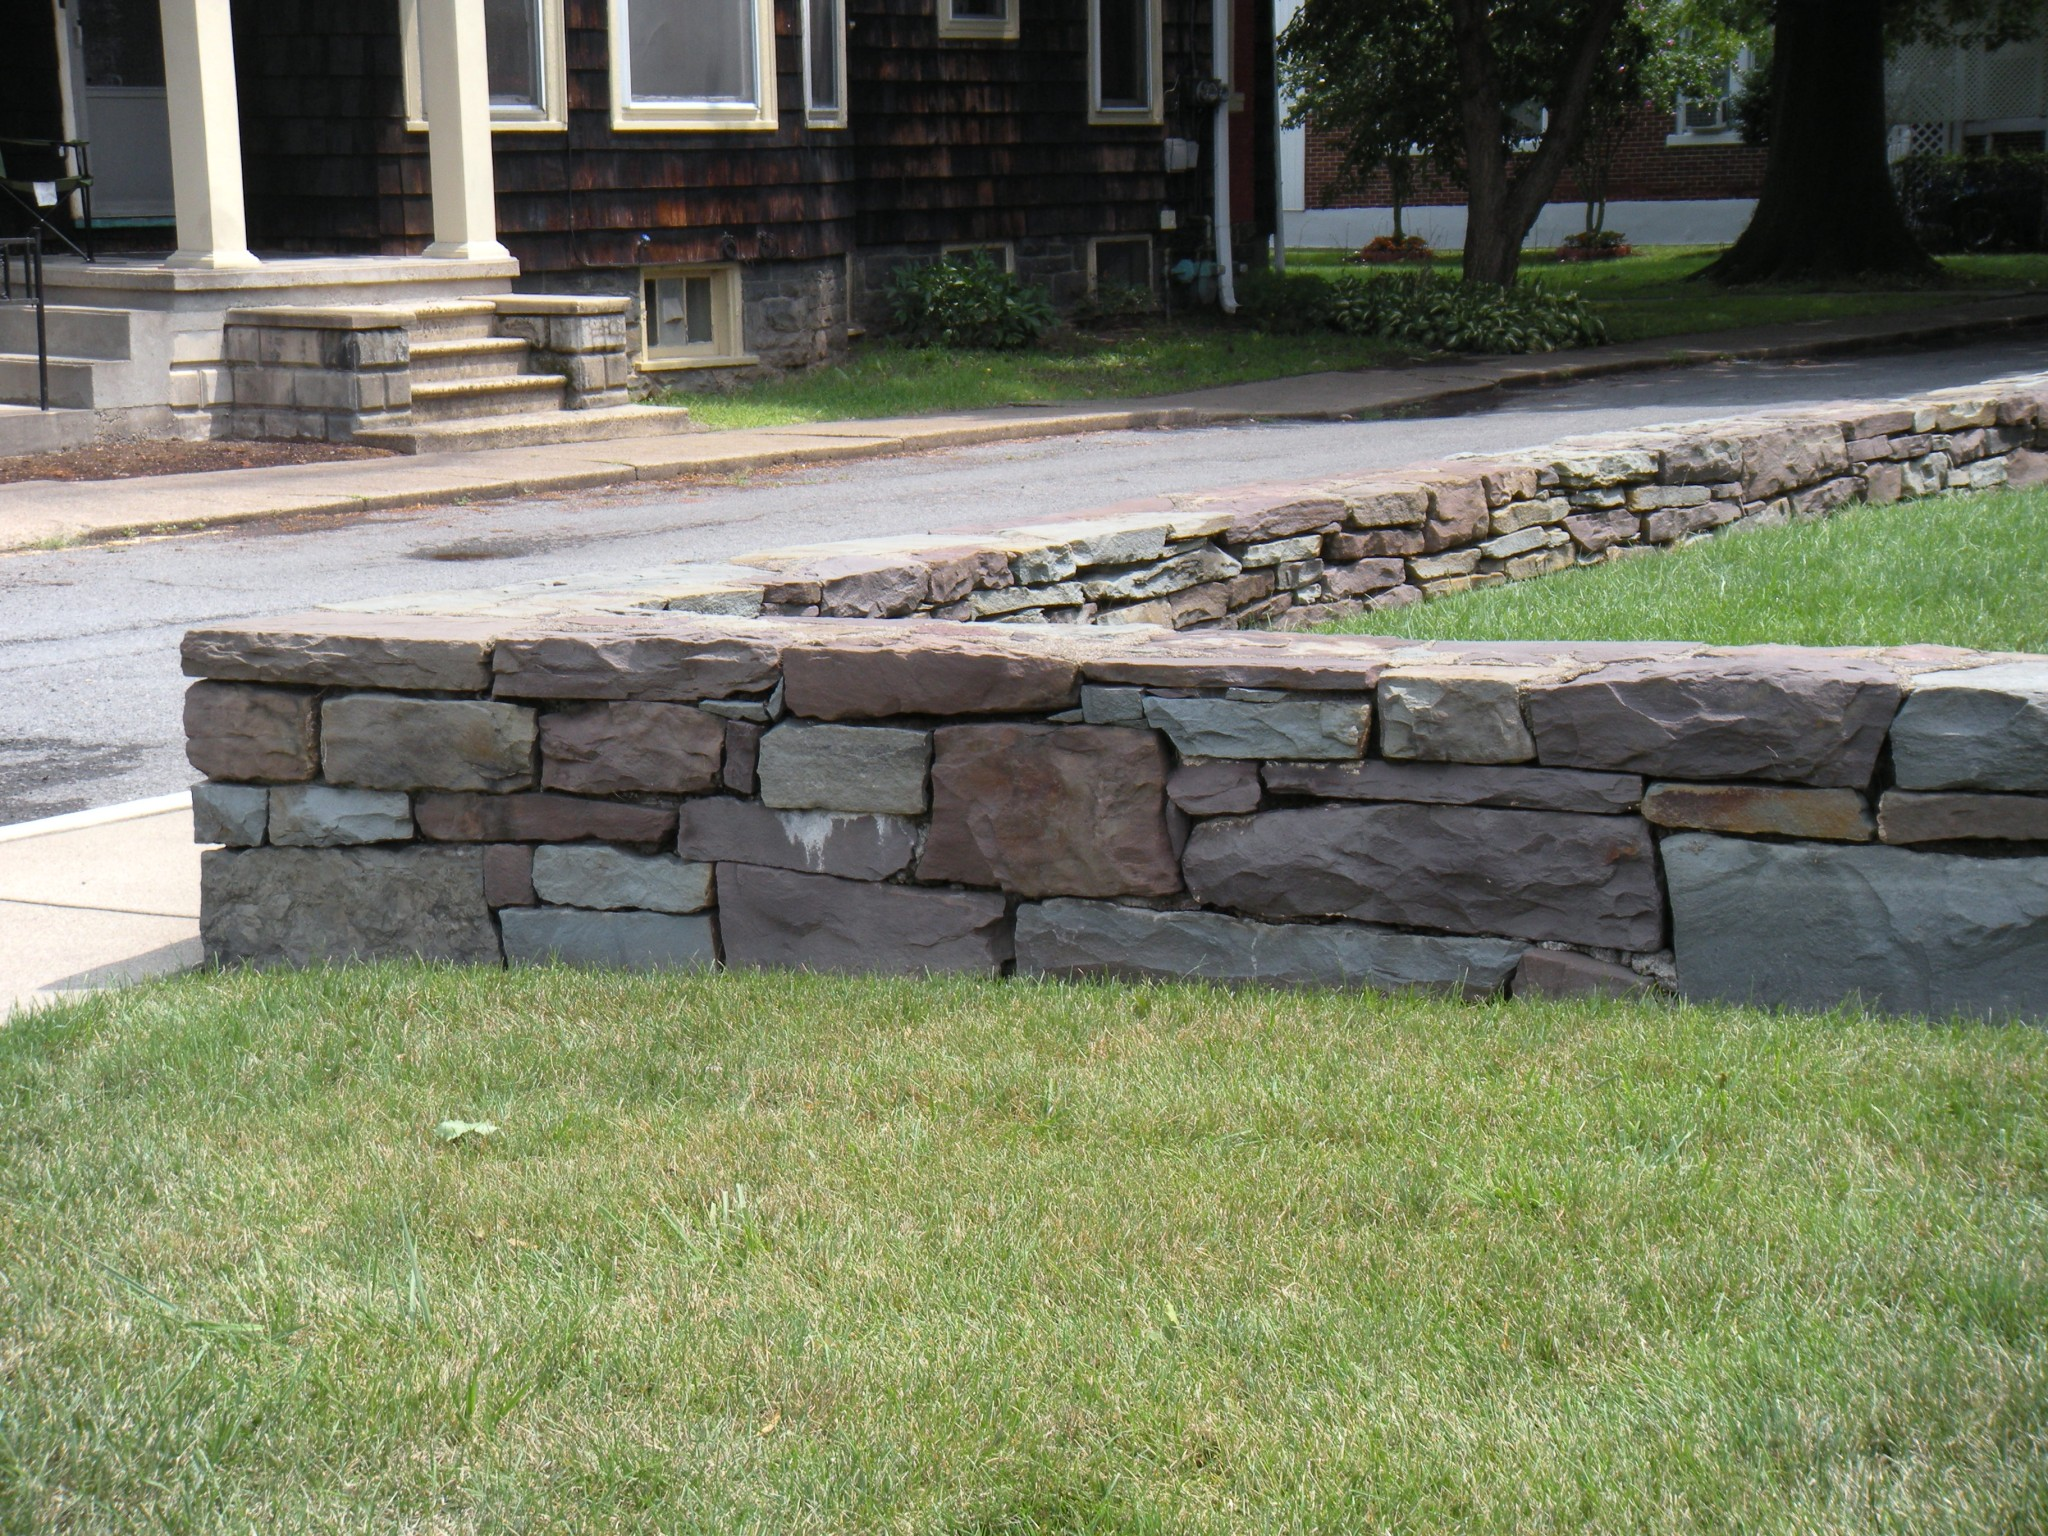 A Retaining Wall at Wahlberg Residence in Sunbury, PA